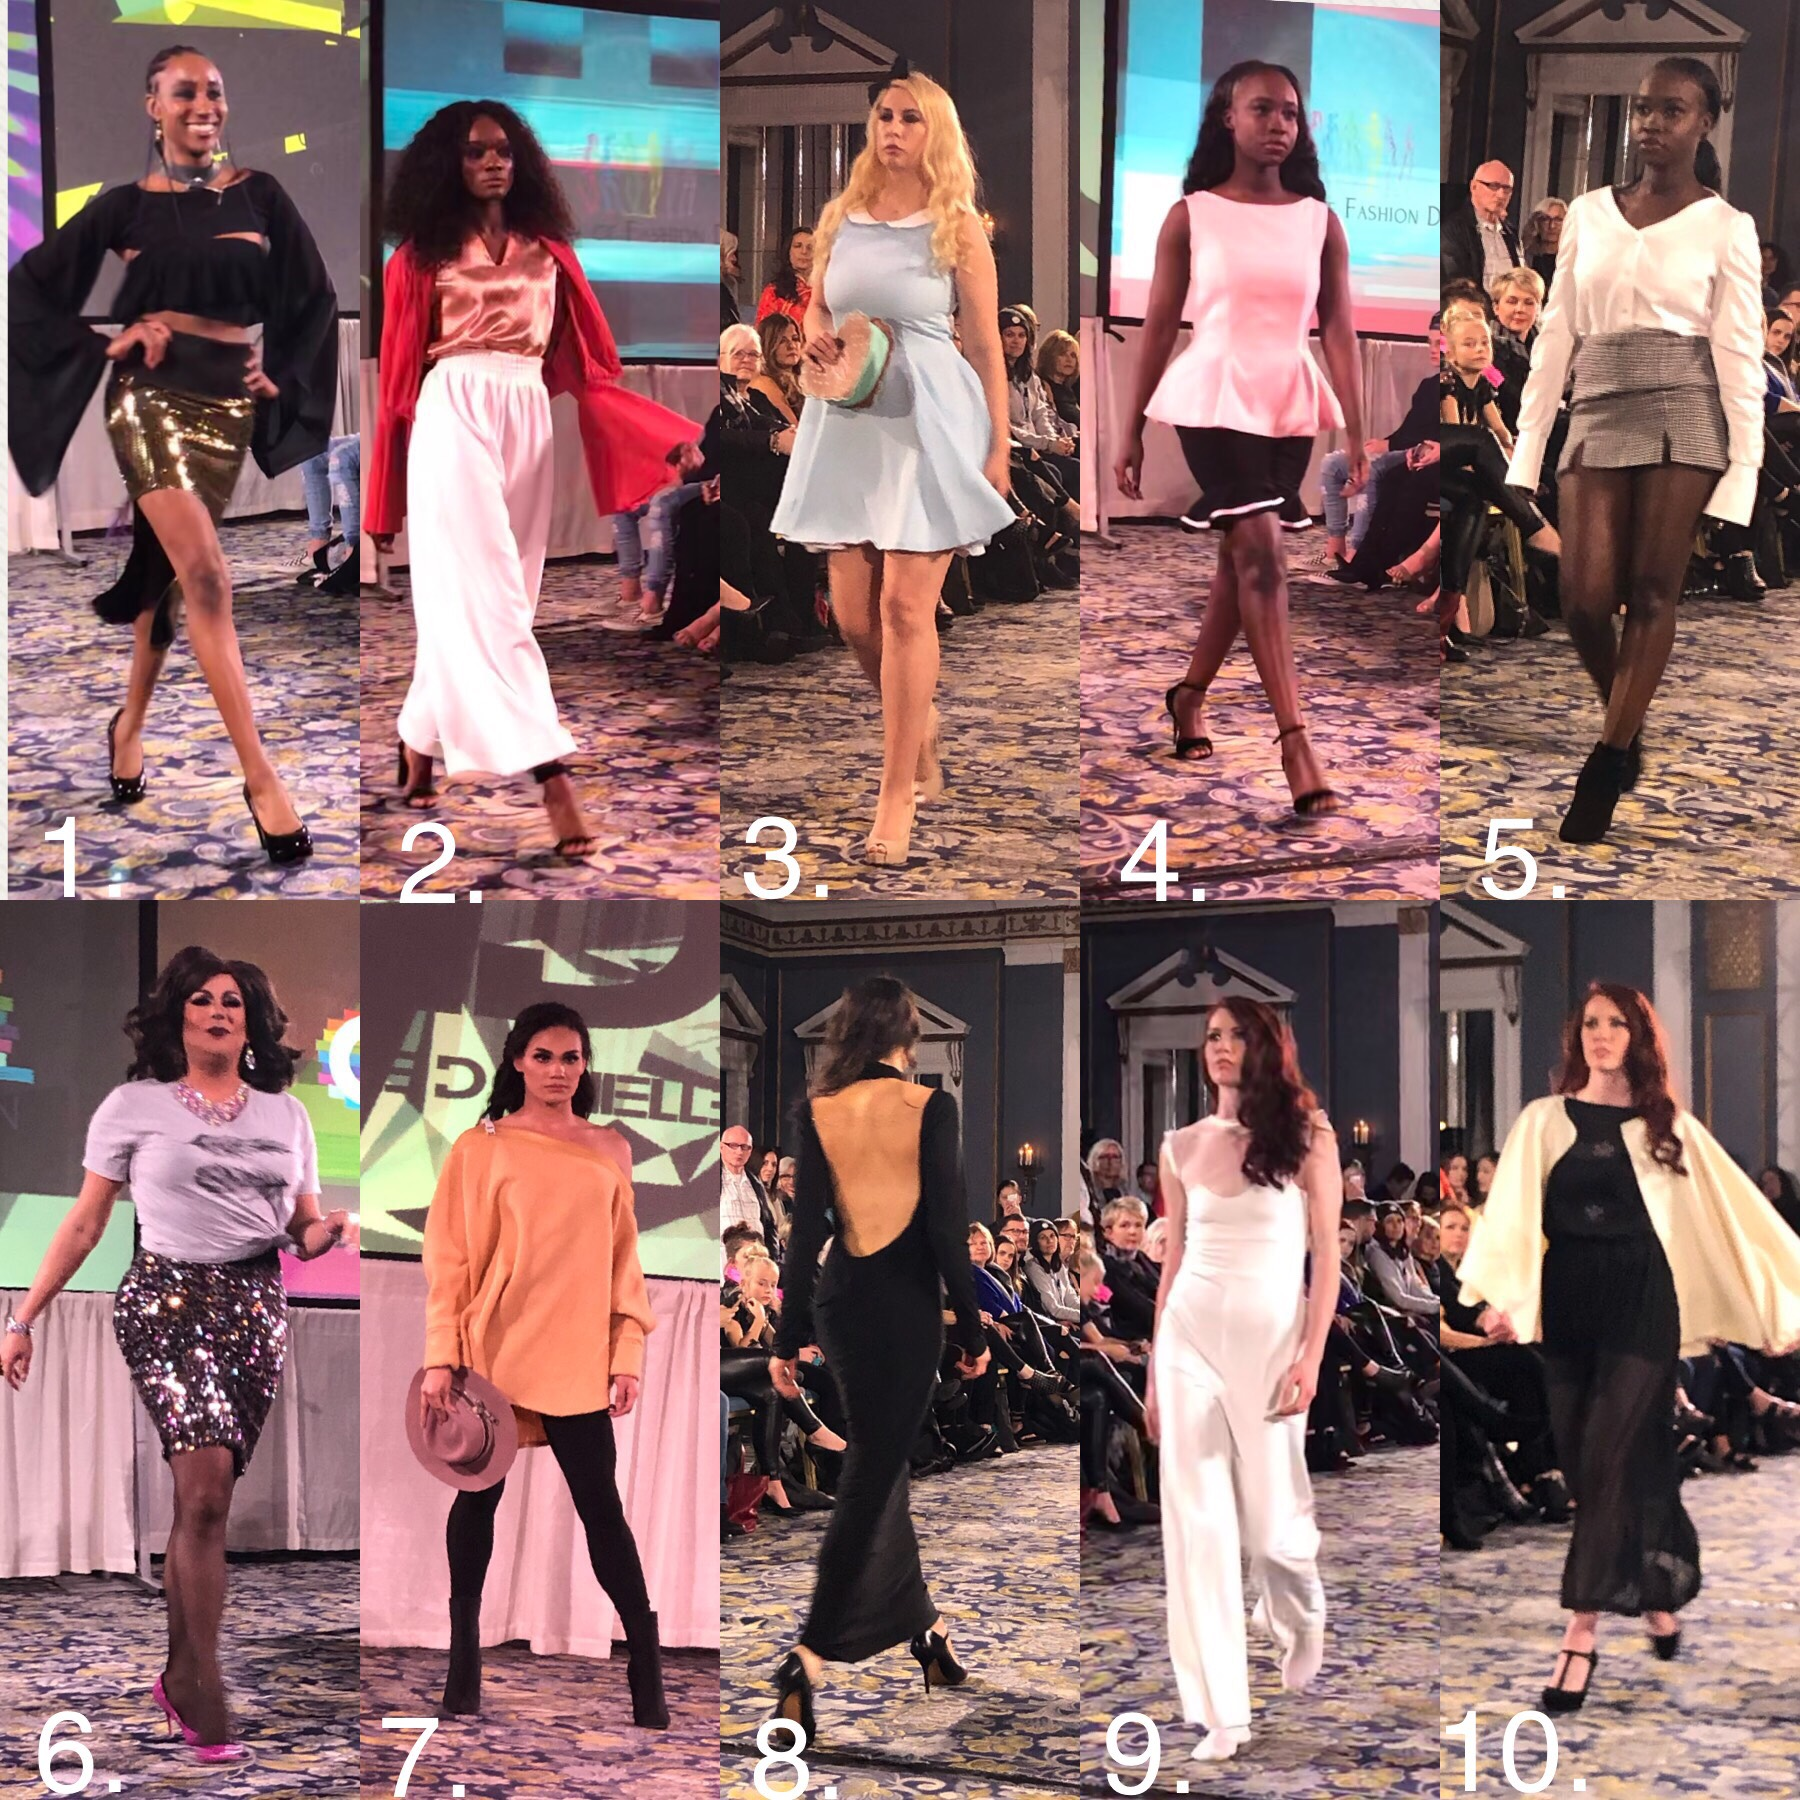 1. Melissa Squire 2. Academy of Fashion Design 3. Academy of Fashion Design 4. Academy of Fashion Design 5. Academy of Fashion Design 6. OUTSaskatoon  7. Cassie Danielle Designs 8. Emily Ann's Designs 9. Emily Ann's Designs 10. SS River Designs